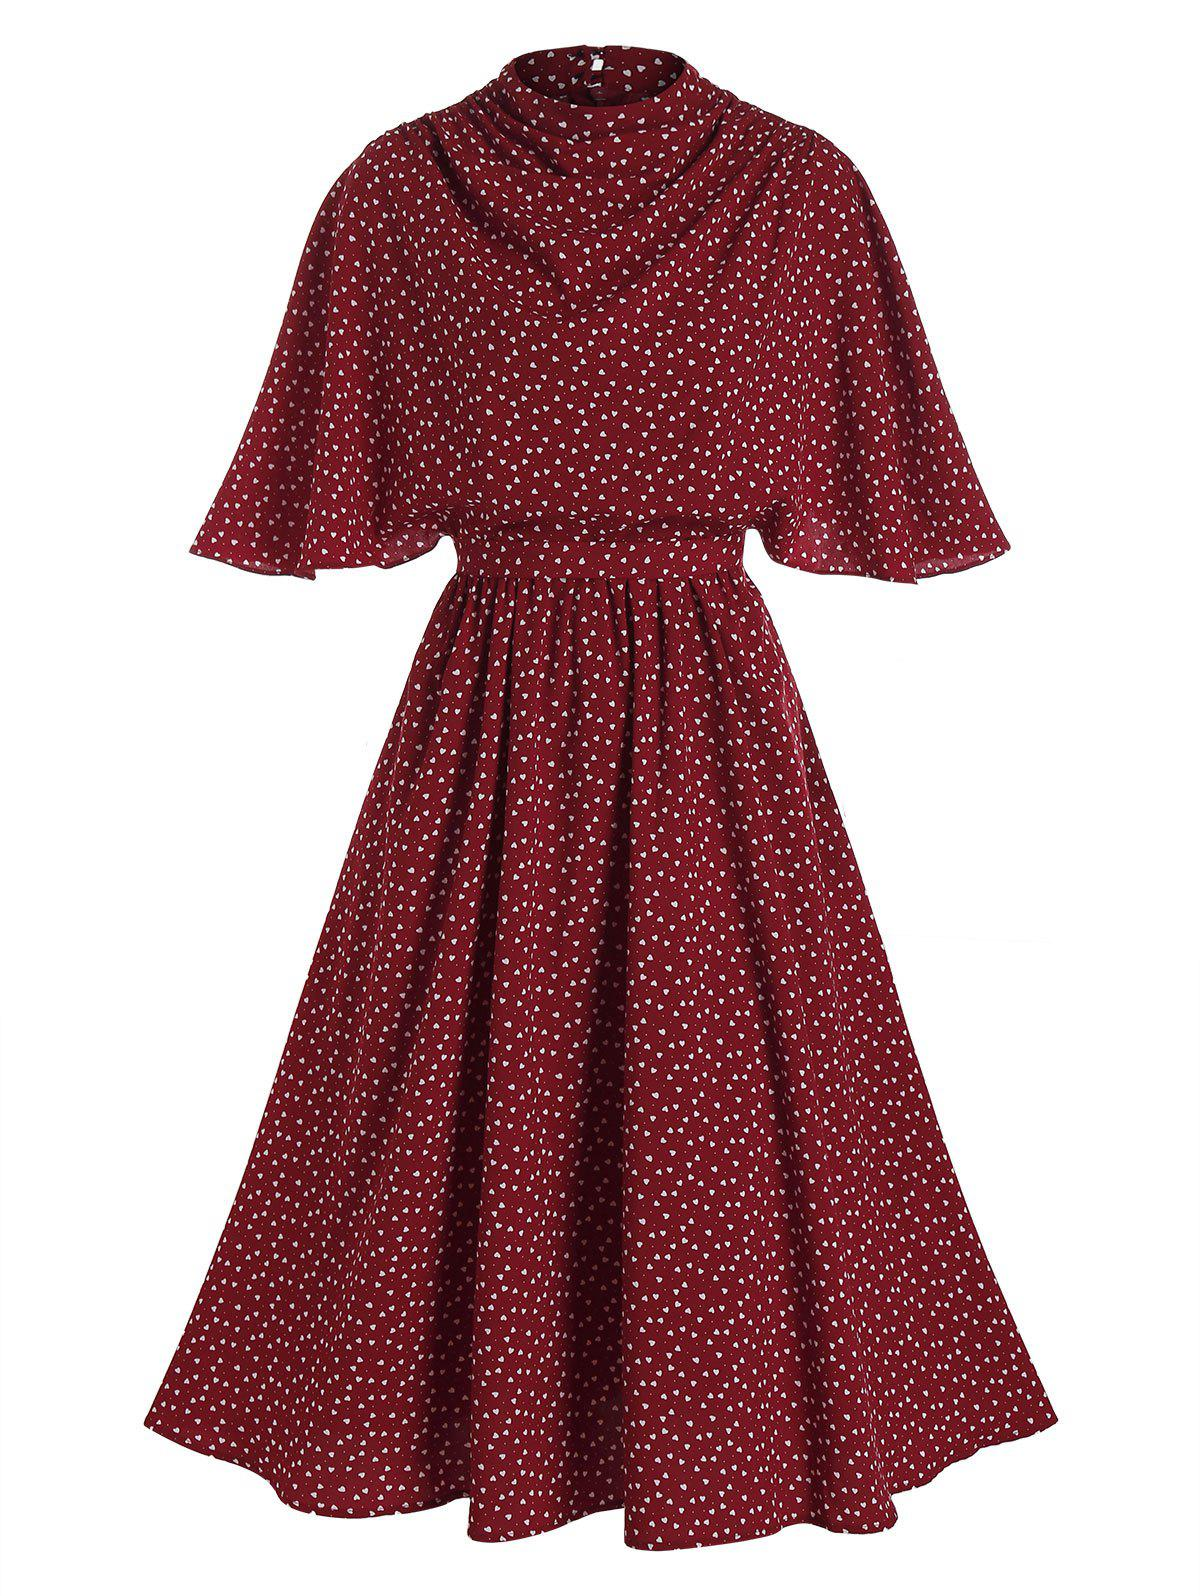 Heart Print Belted Butterfly Sleeve Dress - RED WINE M